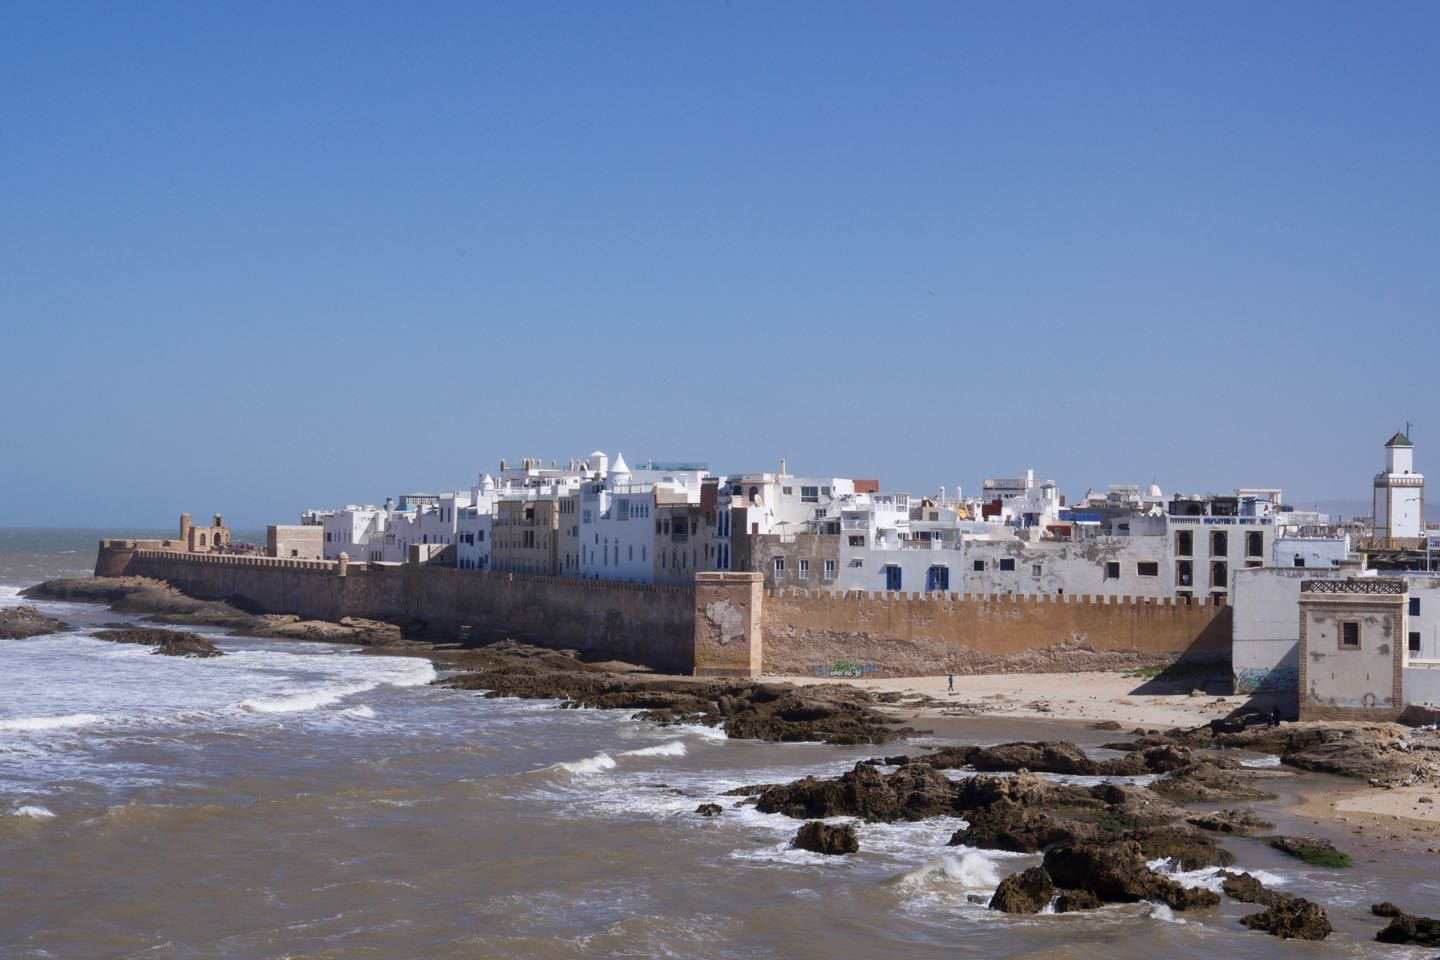 Best panoramic view of the Medina of Essaouira.